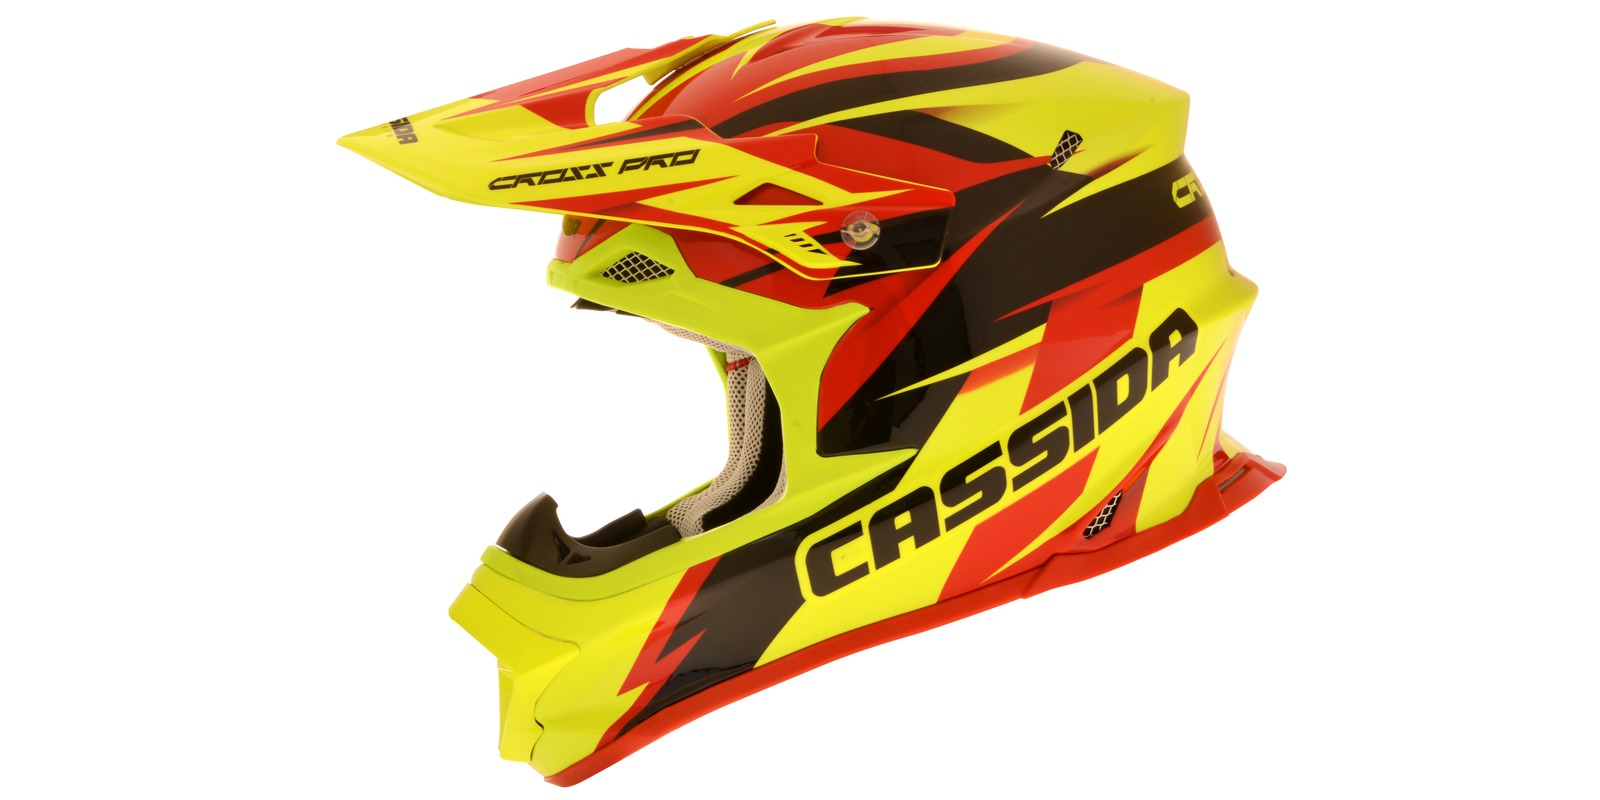 Cassida CROSS PRO yellow/red